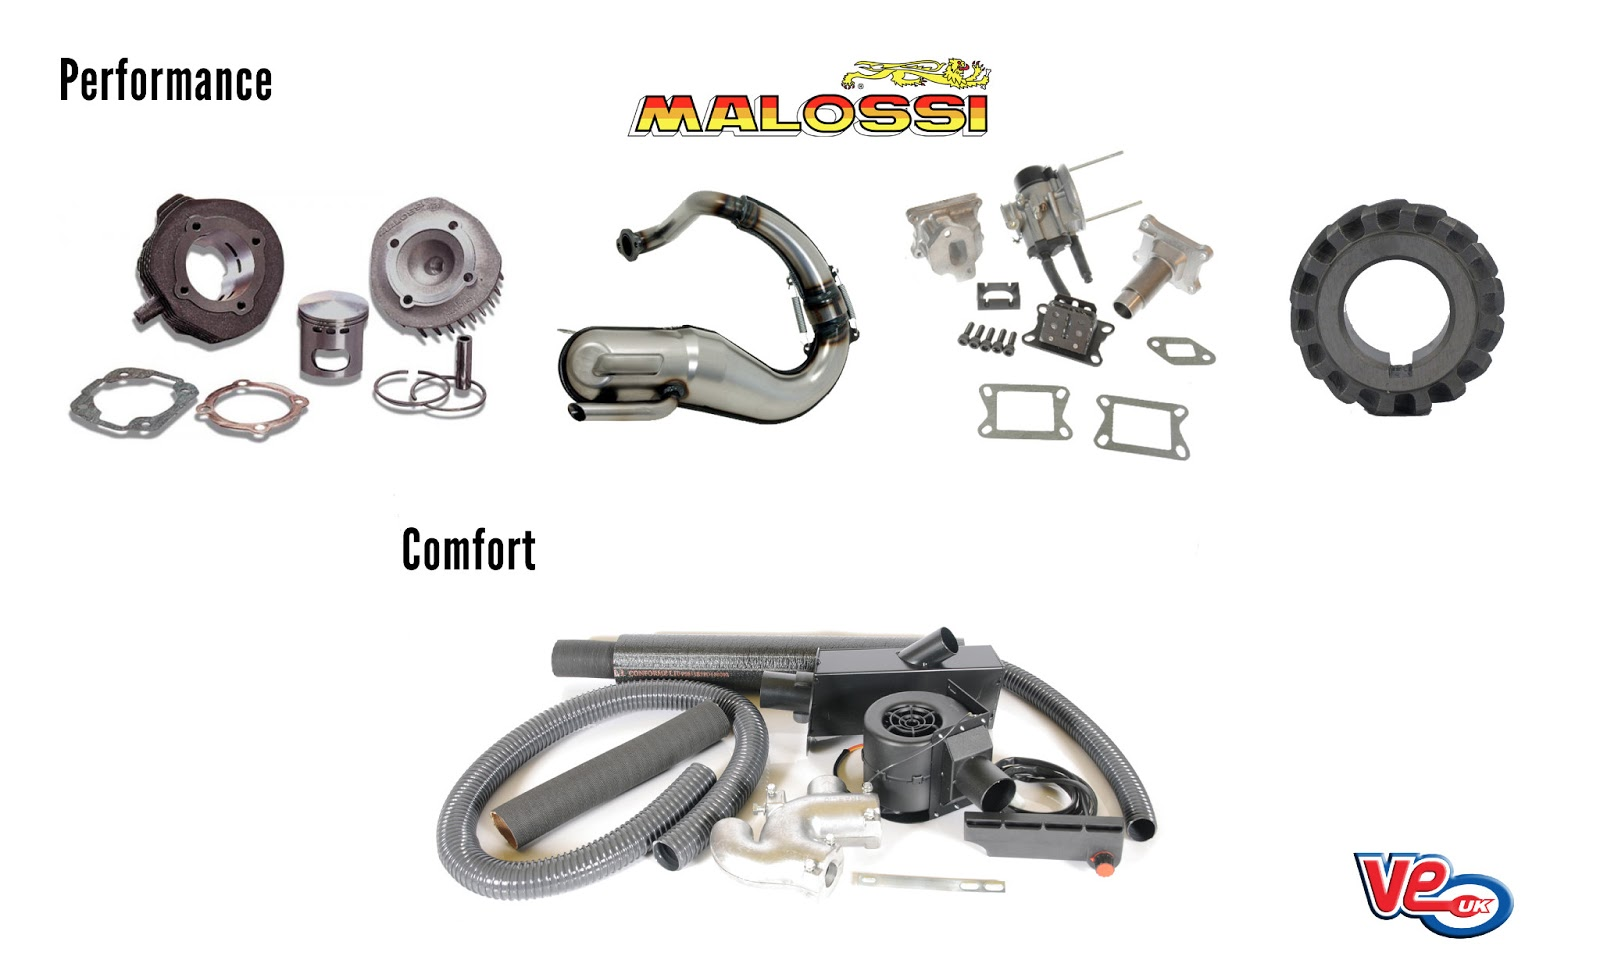 VE Scooter Spares: Performance & Comfort For Piaggio Ape